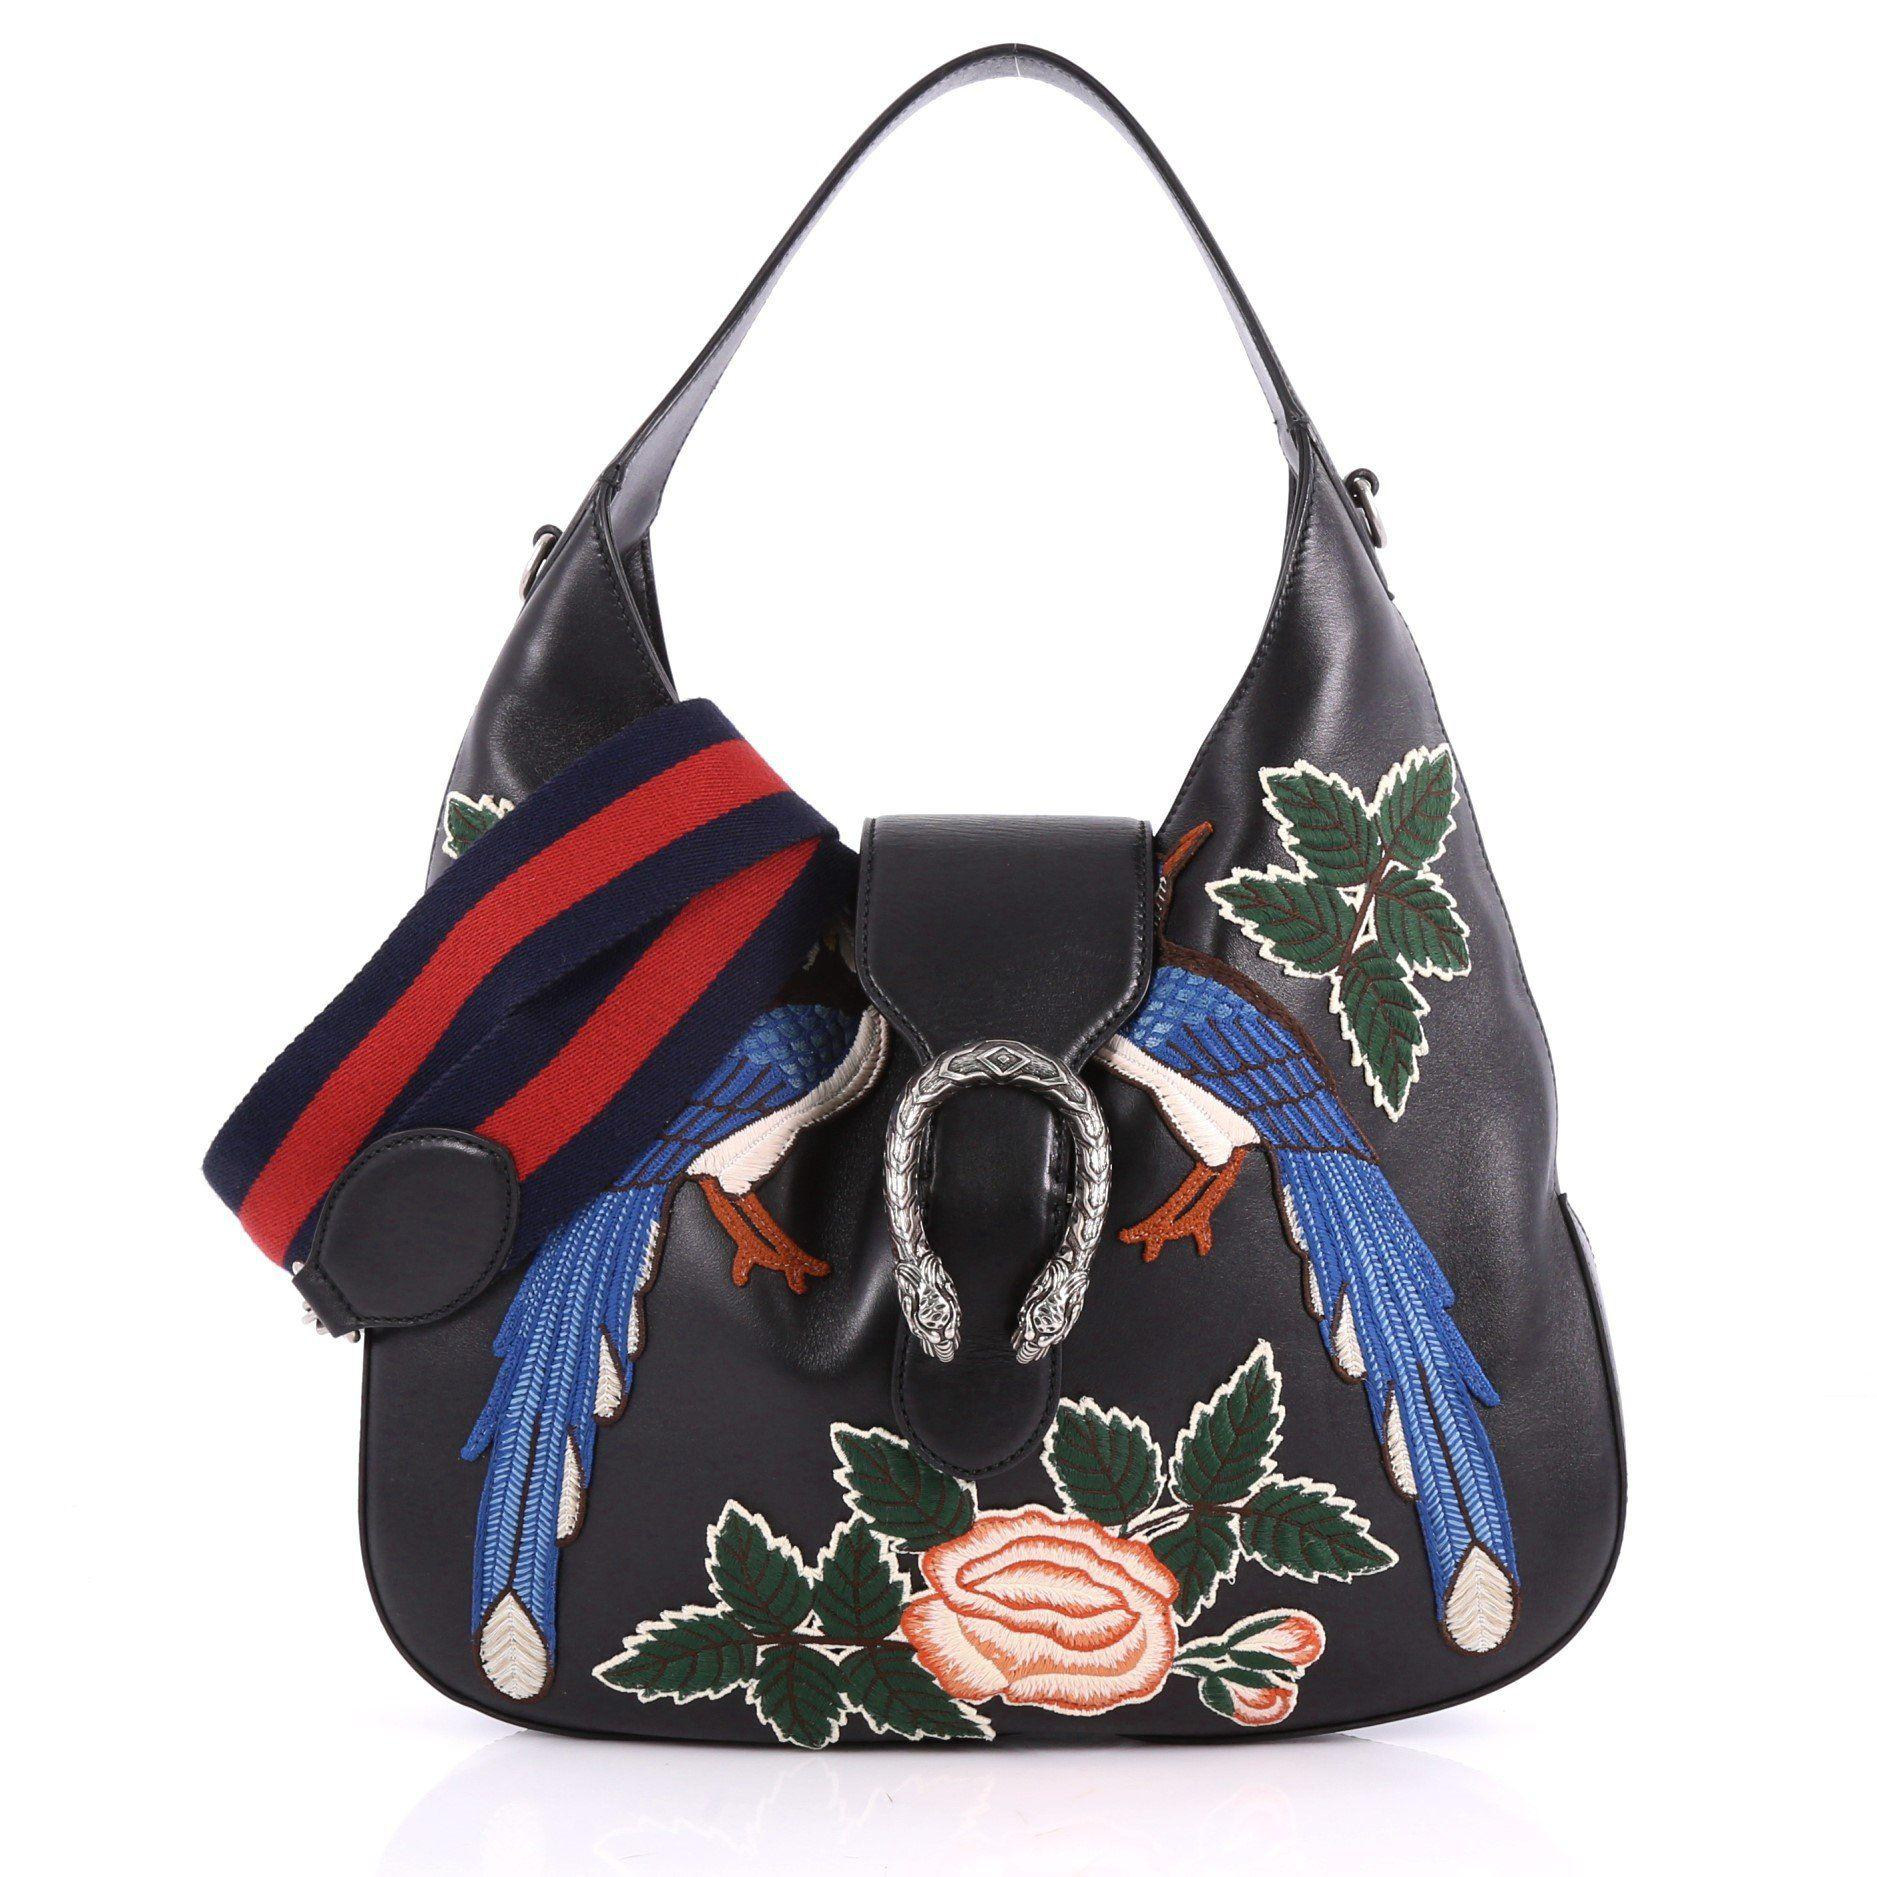 44ccb5bdfacc Gucci - Multicolor Dionysus Hobo Embroidered Leather Small - Lyst. View  fullscreen